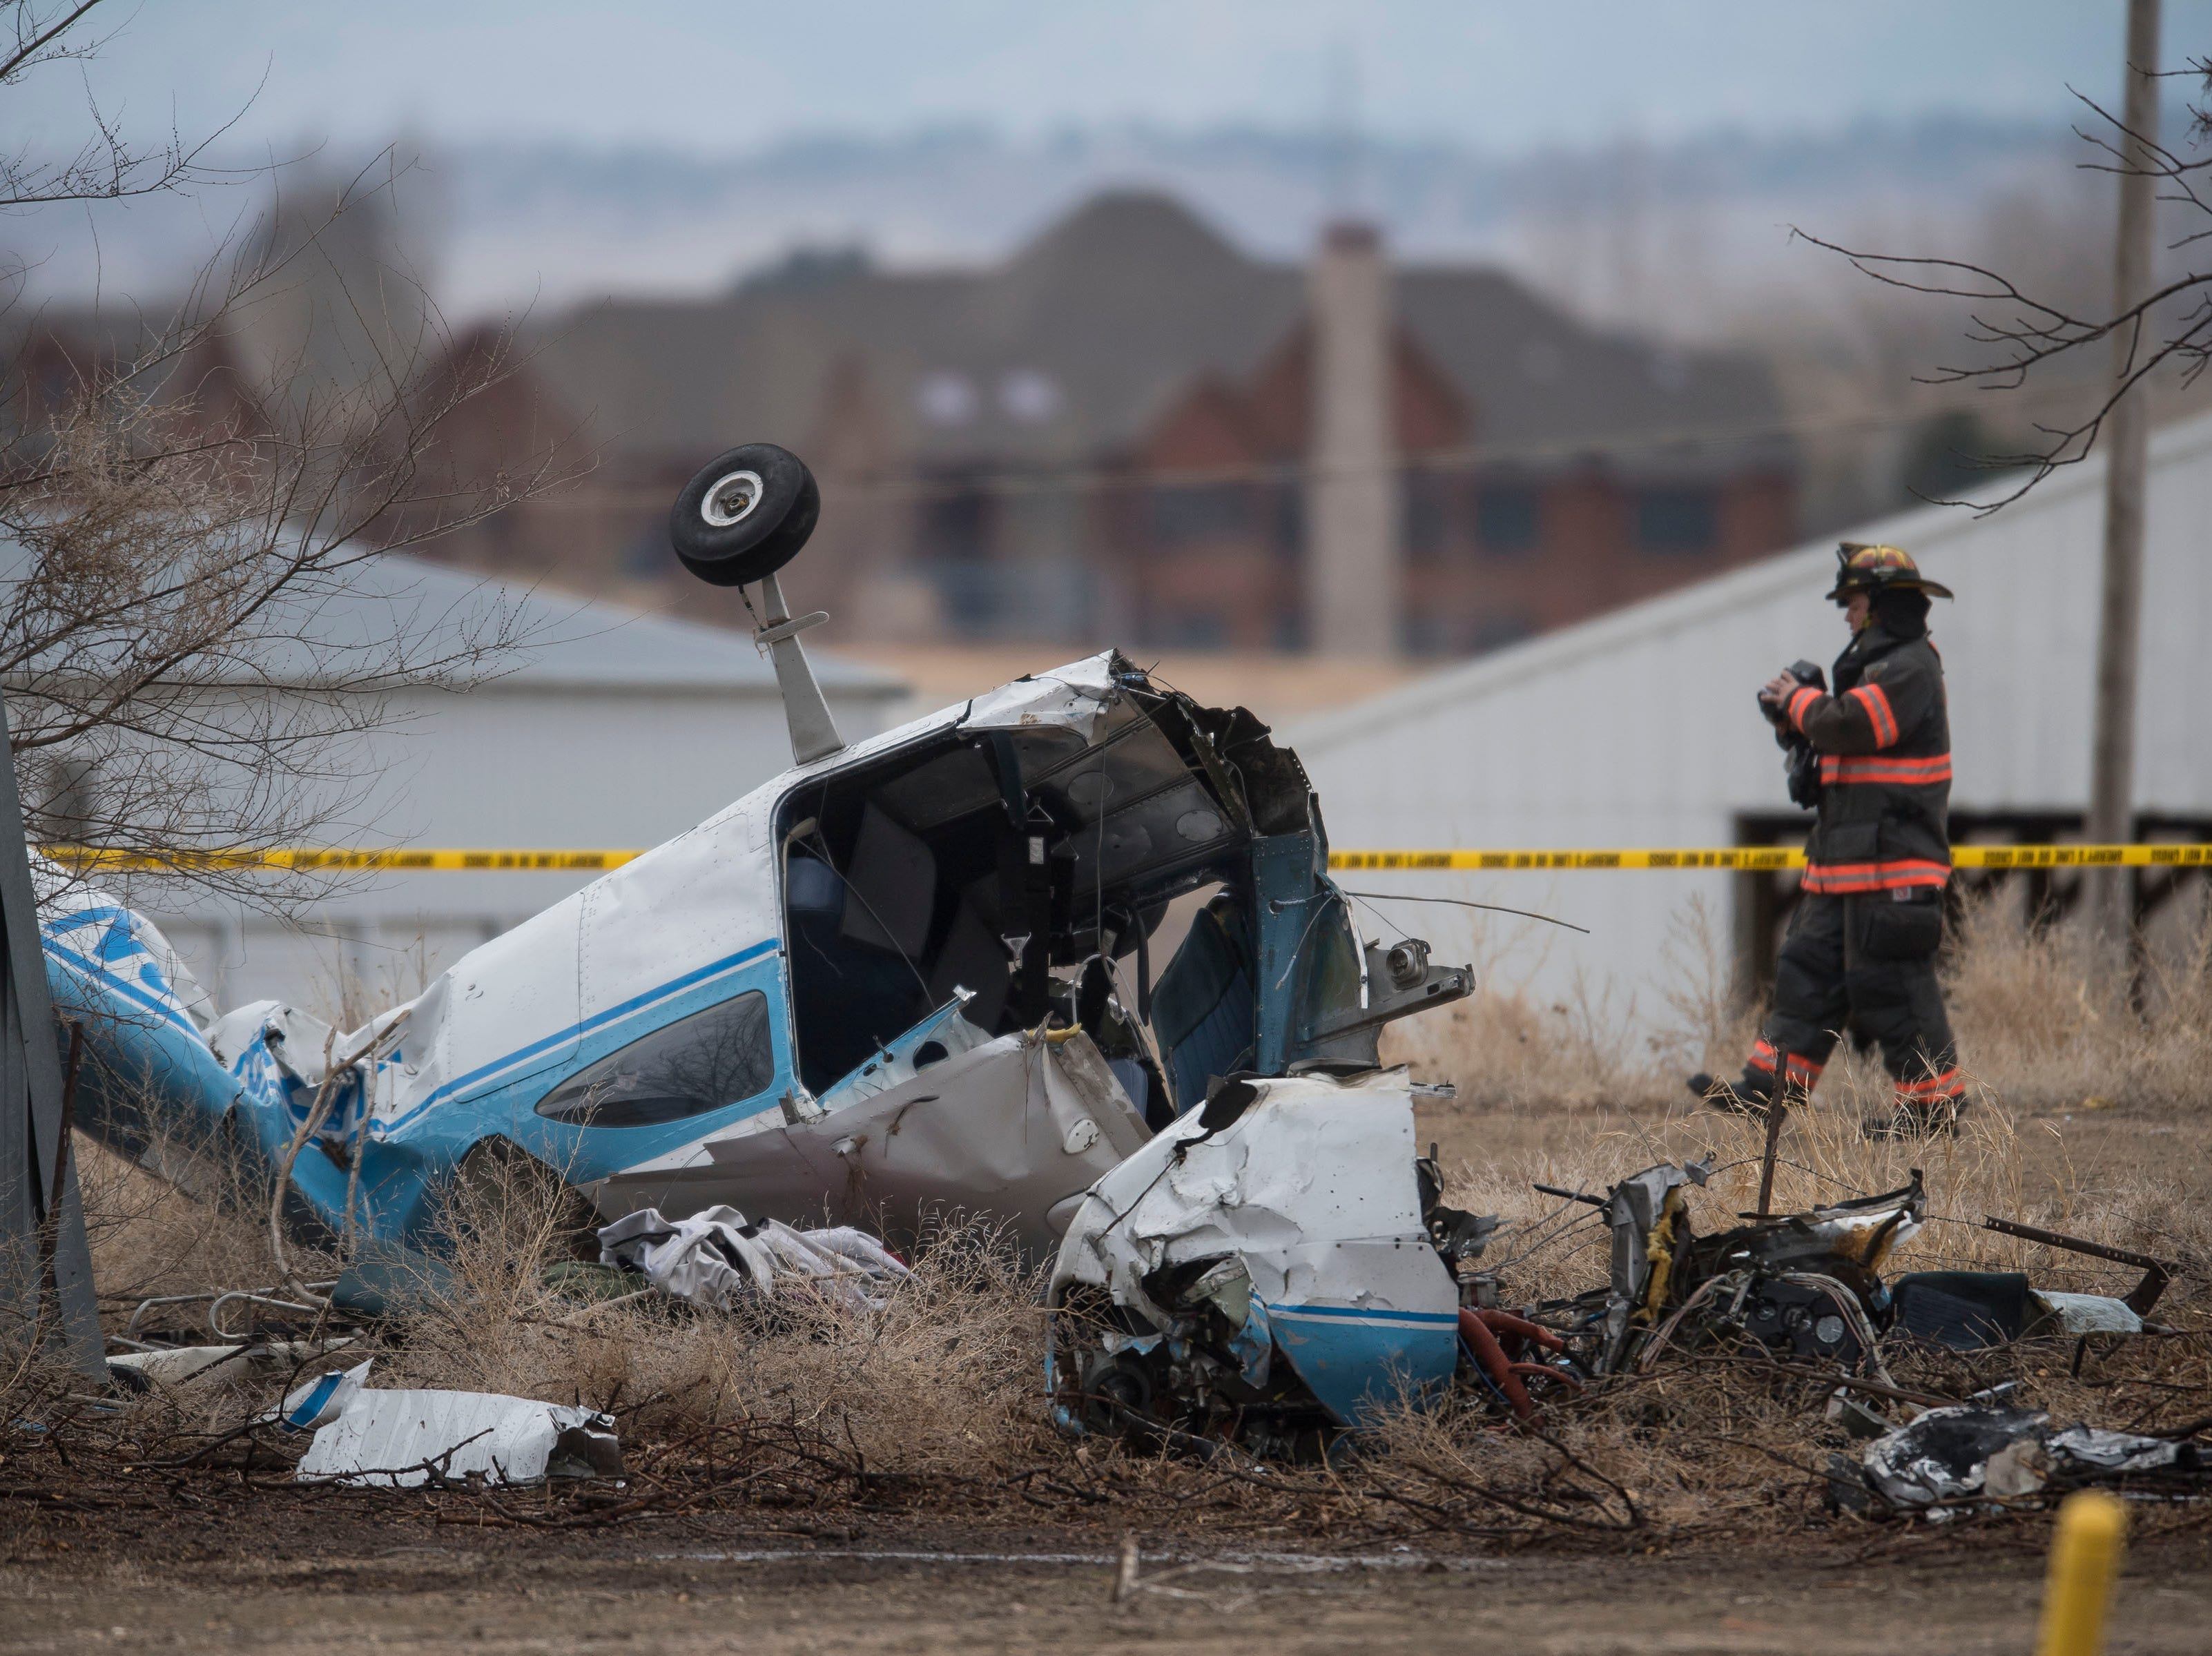 A Loveland firefighter carries a video camera behind the fuselage of a small plane that crashed near the driveway of a dairy farm, injuring three people onboard, on Saturday, March 23, 2019. The plane came to rest west of the intersection of East County Road 30 and Boyd Lake Avenue in Fort Collins, Colo. The crash occurred just west of Northern Colorado Regional Airport.